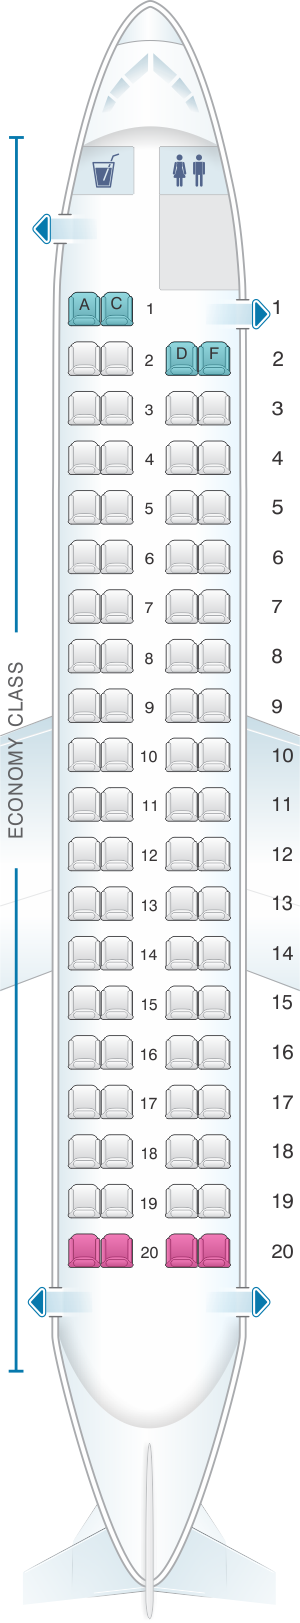 Seat map for SpiceJet Bombardier Q400